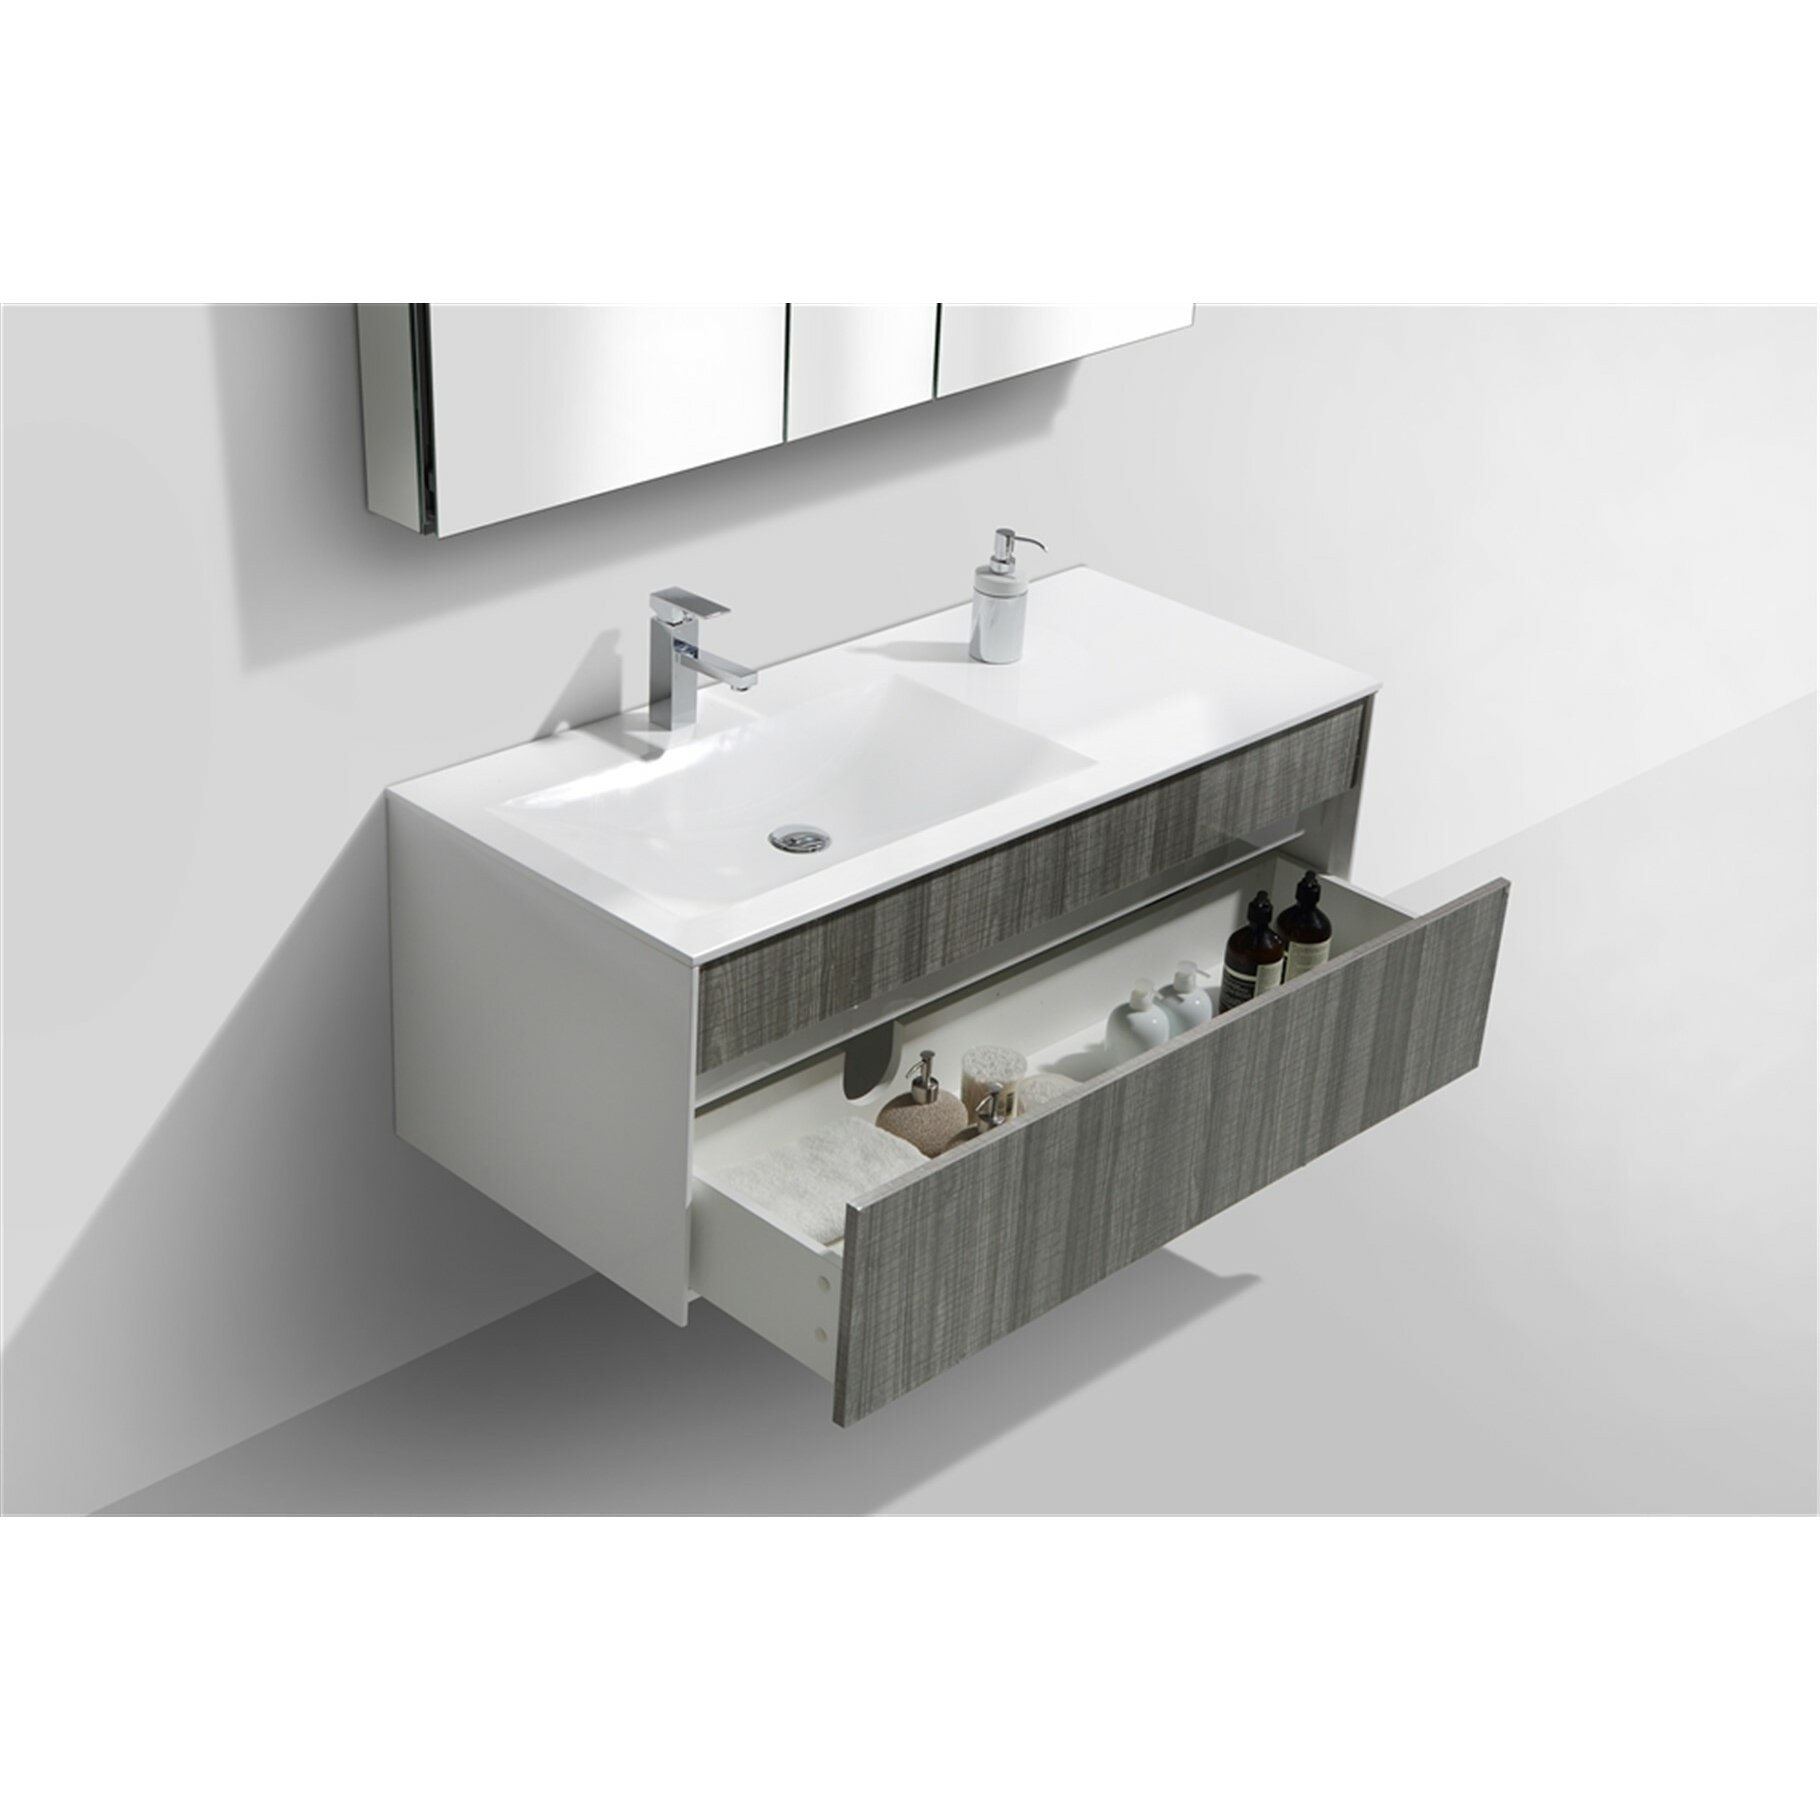 Kube bath tona fitto 48 single modern bathroom vanity set reviews wayfair - Kona modern bathroom vanity set ...